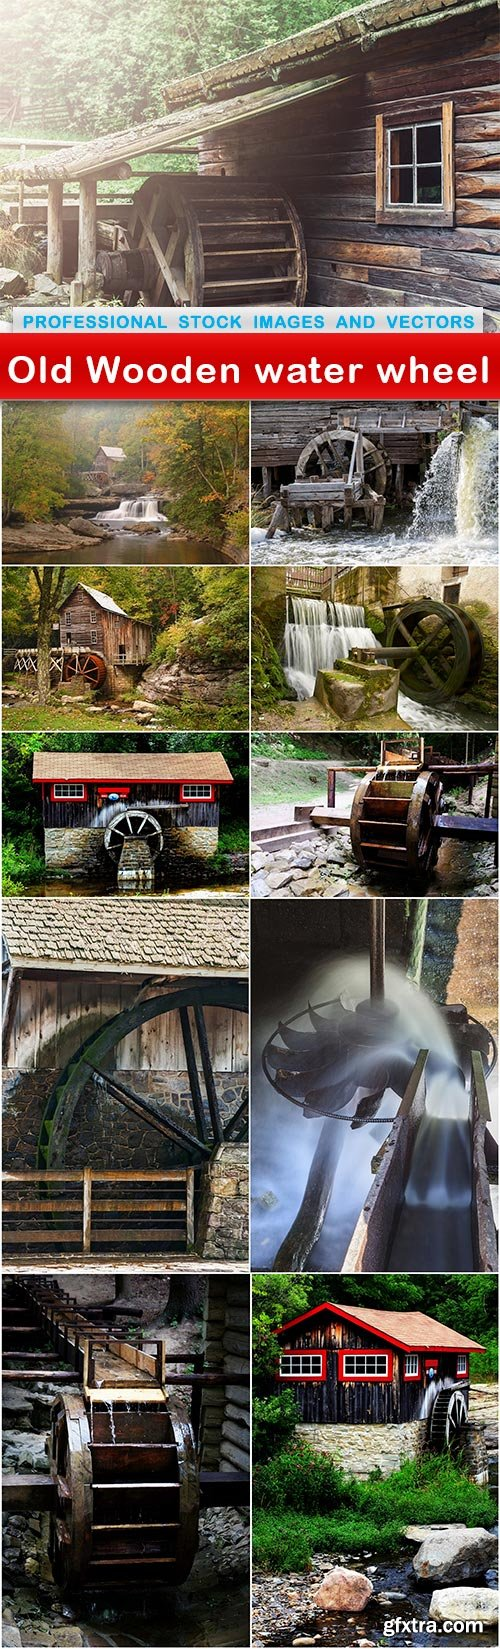 Old Wooden water wheel - 11 UHQ JPEG